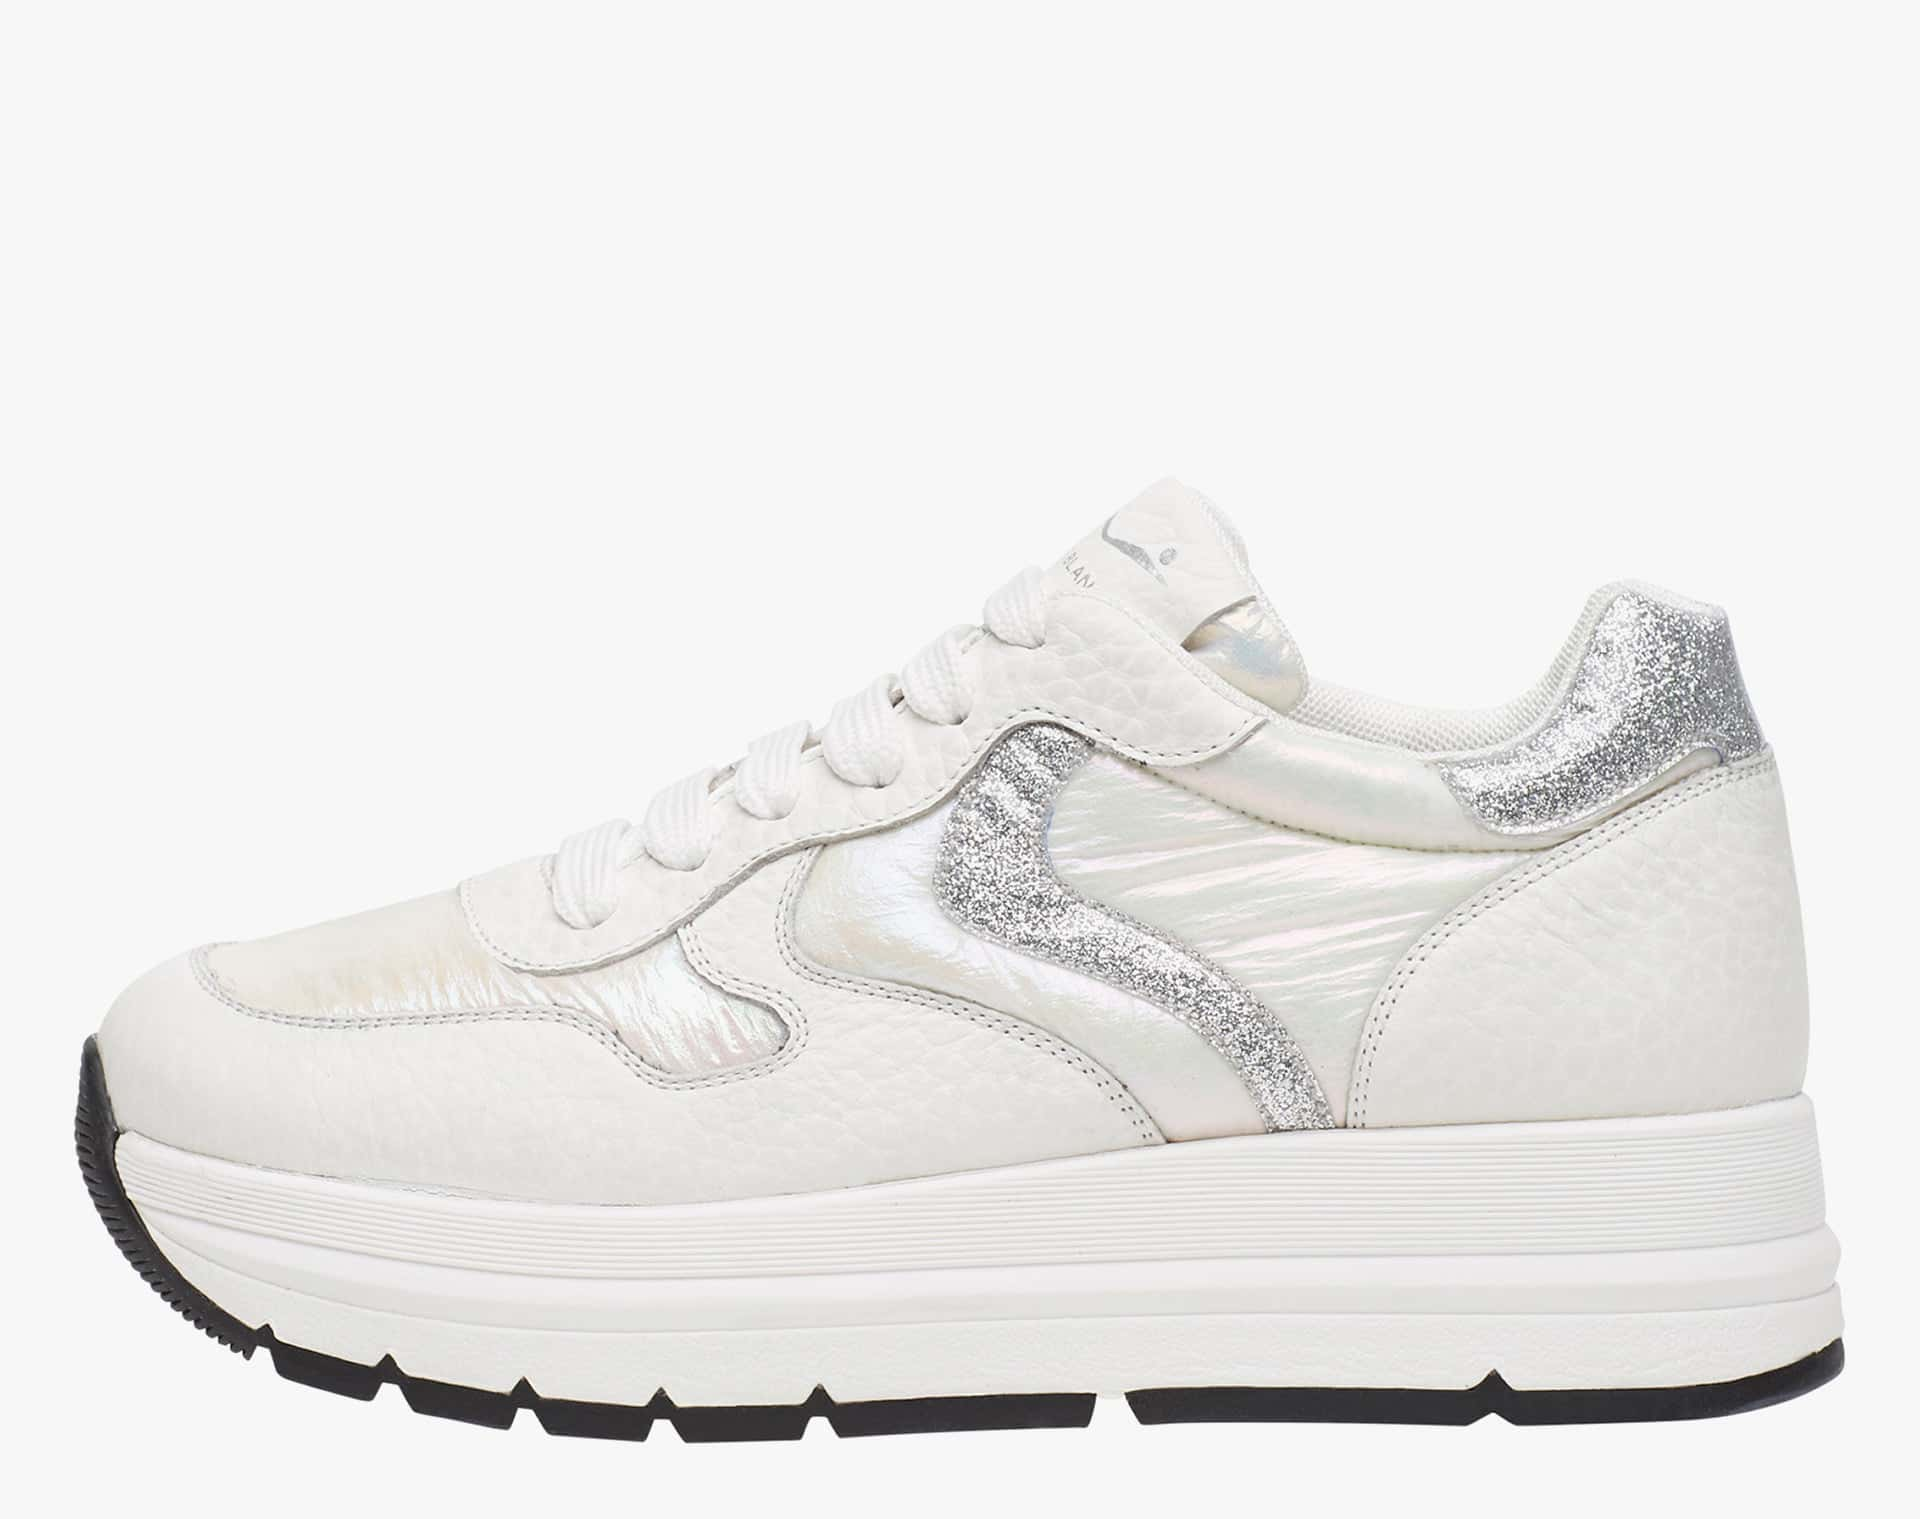 MARAN - Calfskin sneakers with glossy inserts - White/Silver